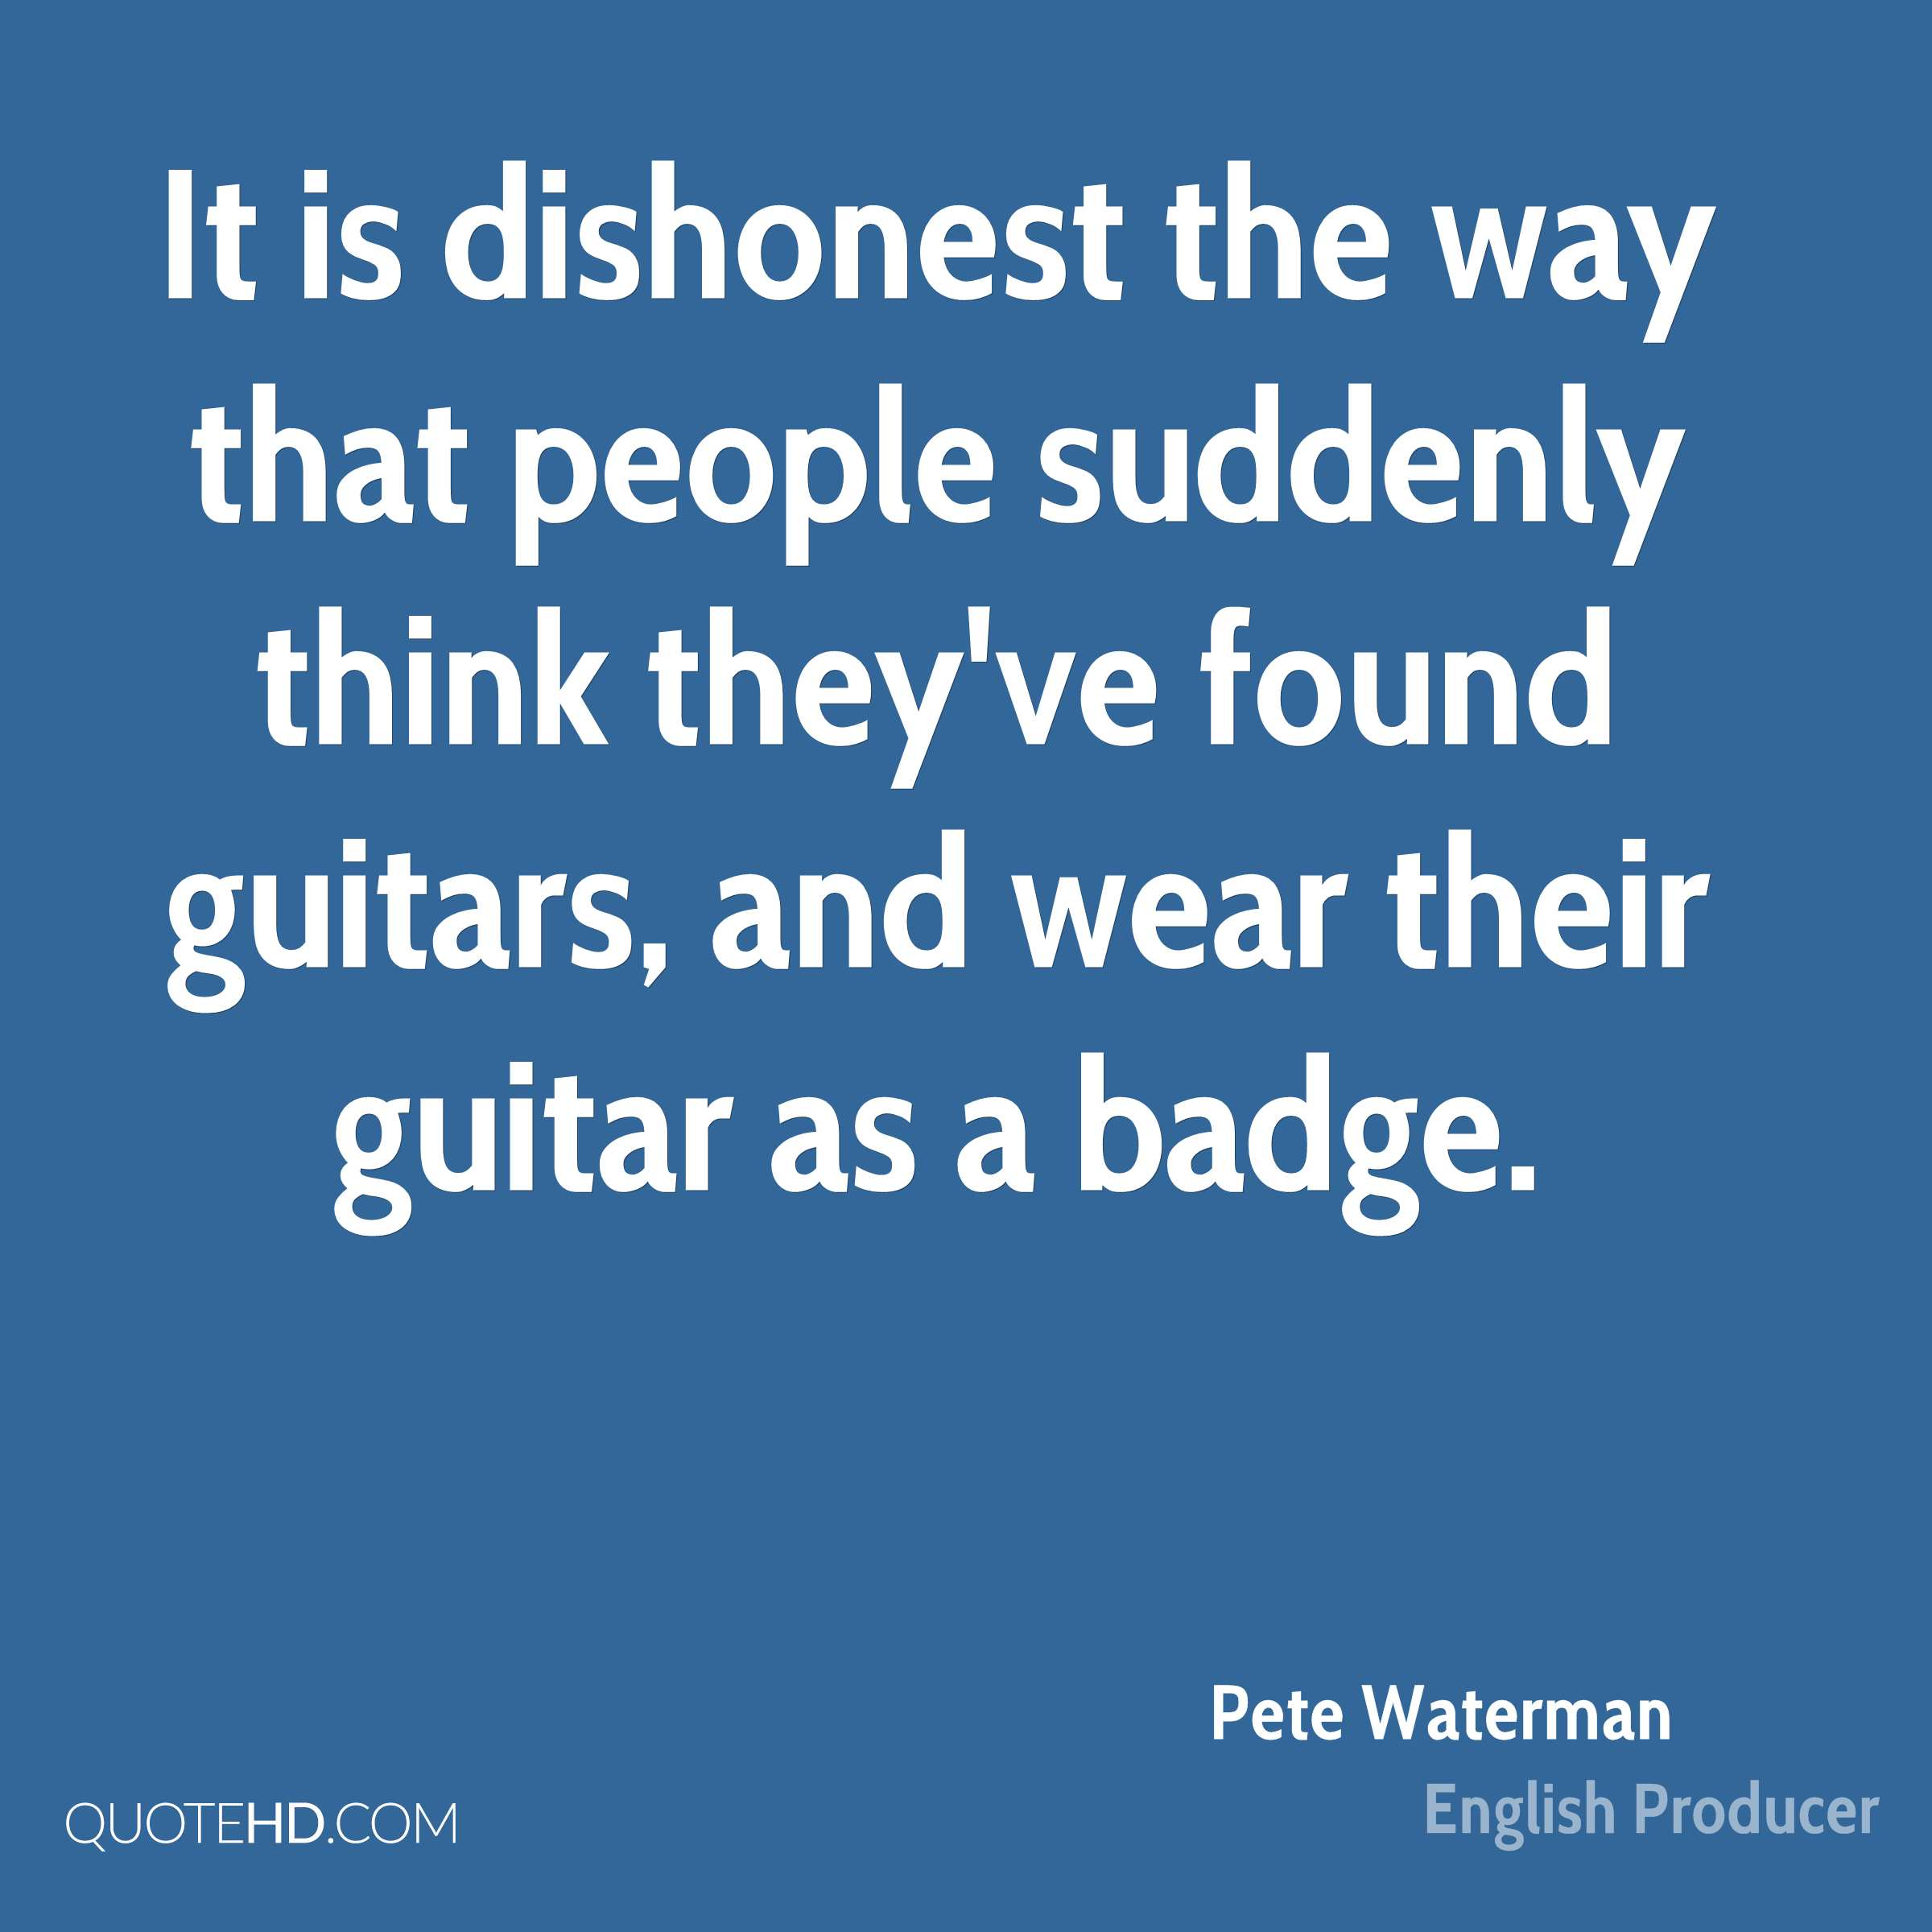 It is dishonest the way that people suddenly think they've found guitars, and wear their guitar as a badge.